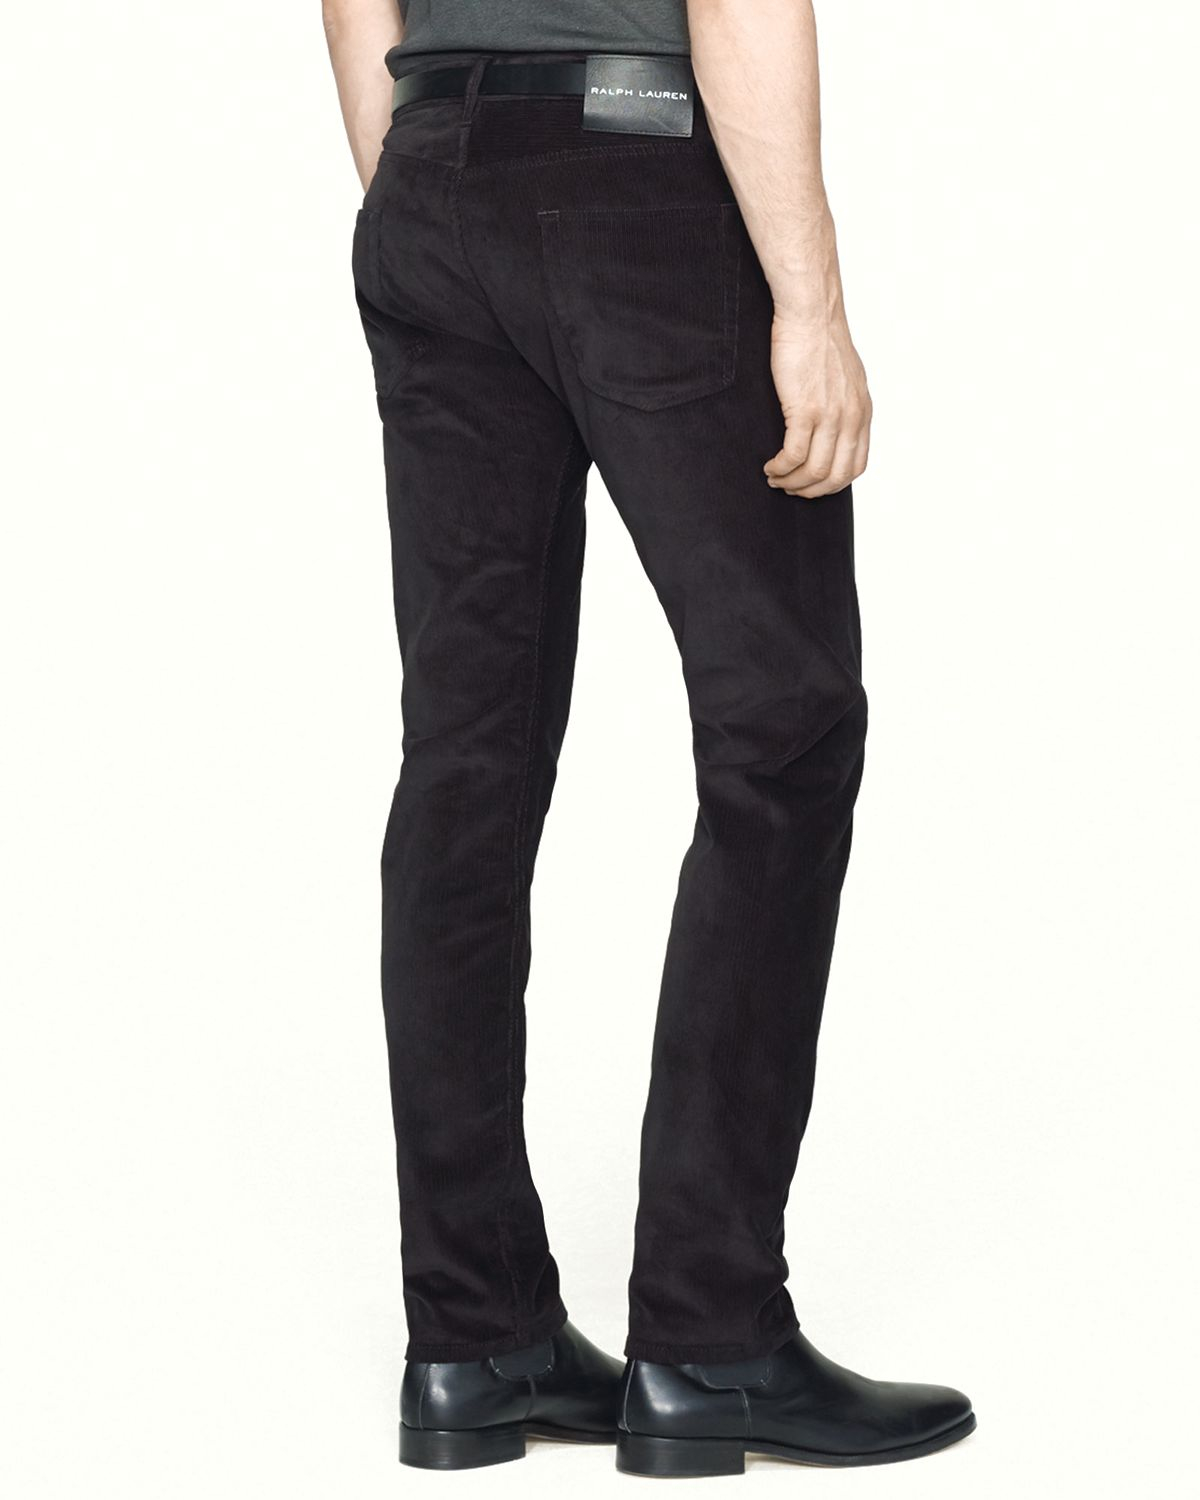 Ralph lauren Black Label Corduroy Pants - Straight Fit in Black ...